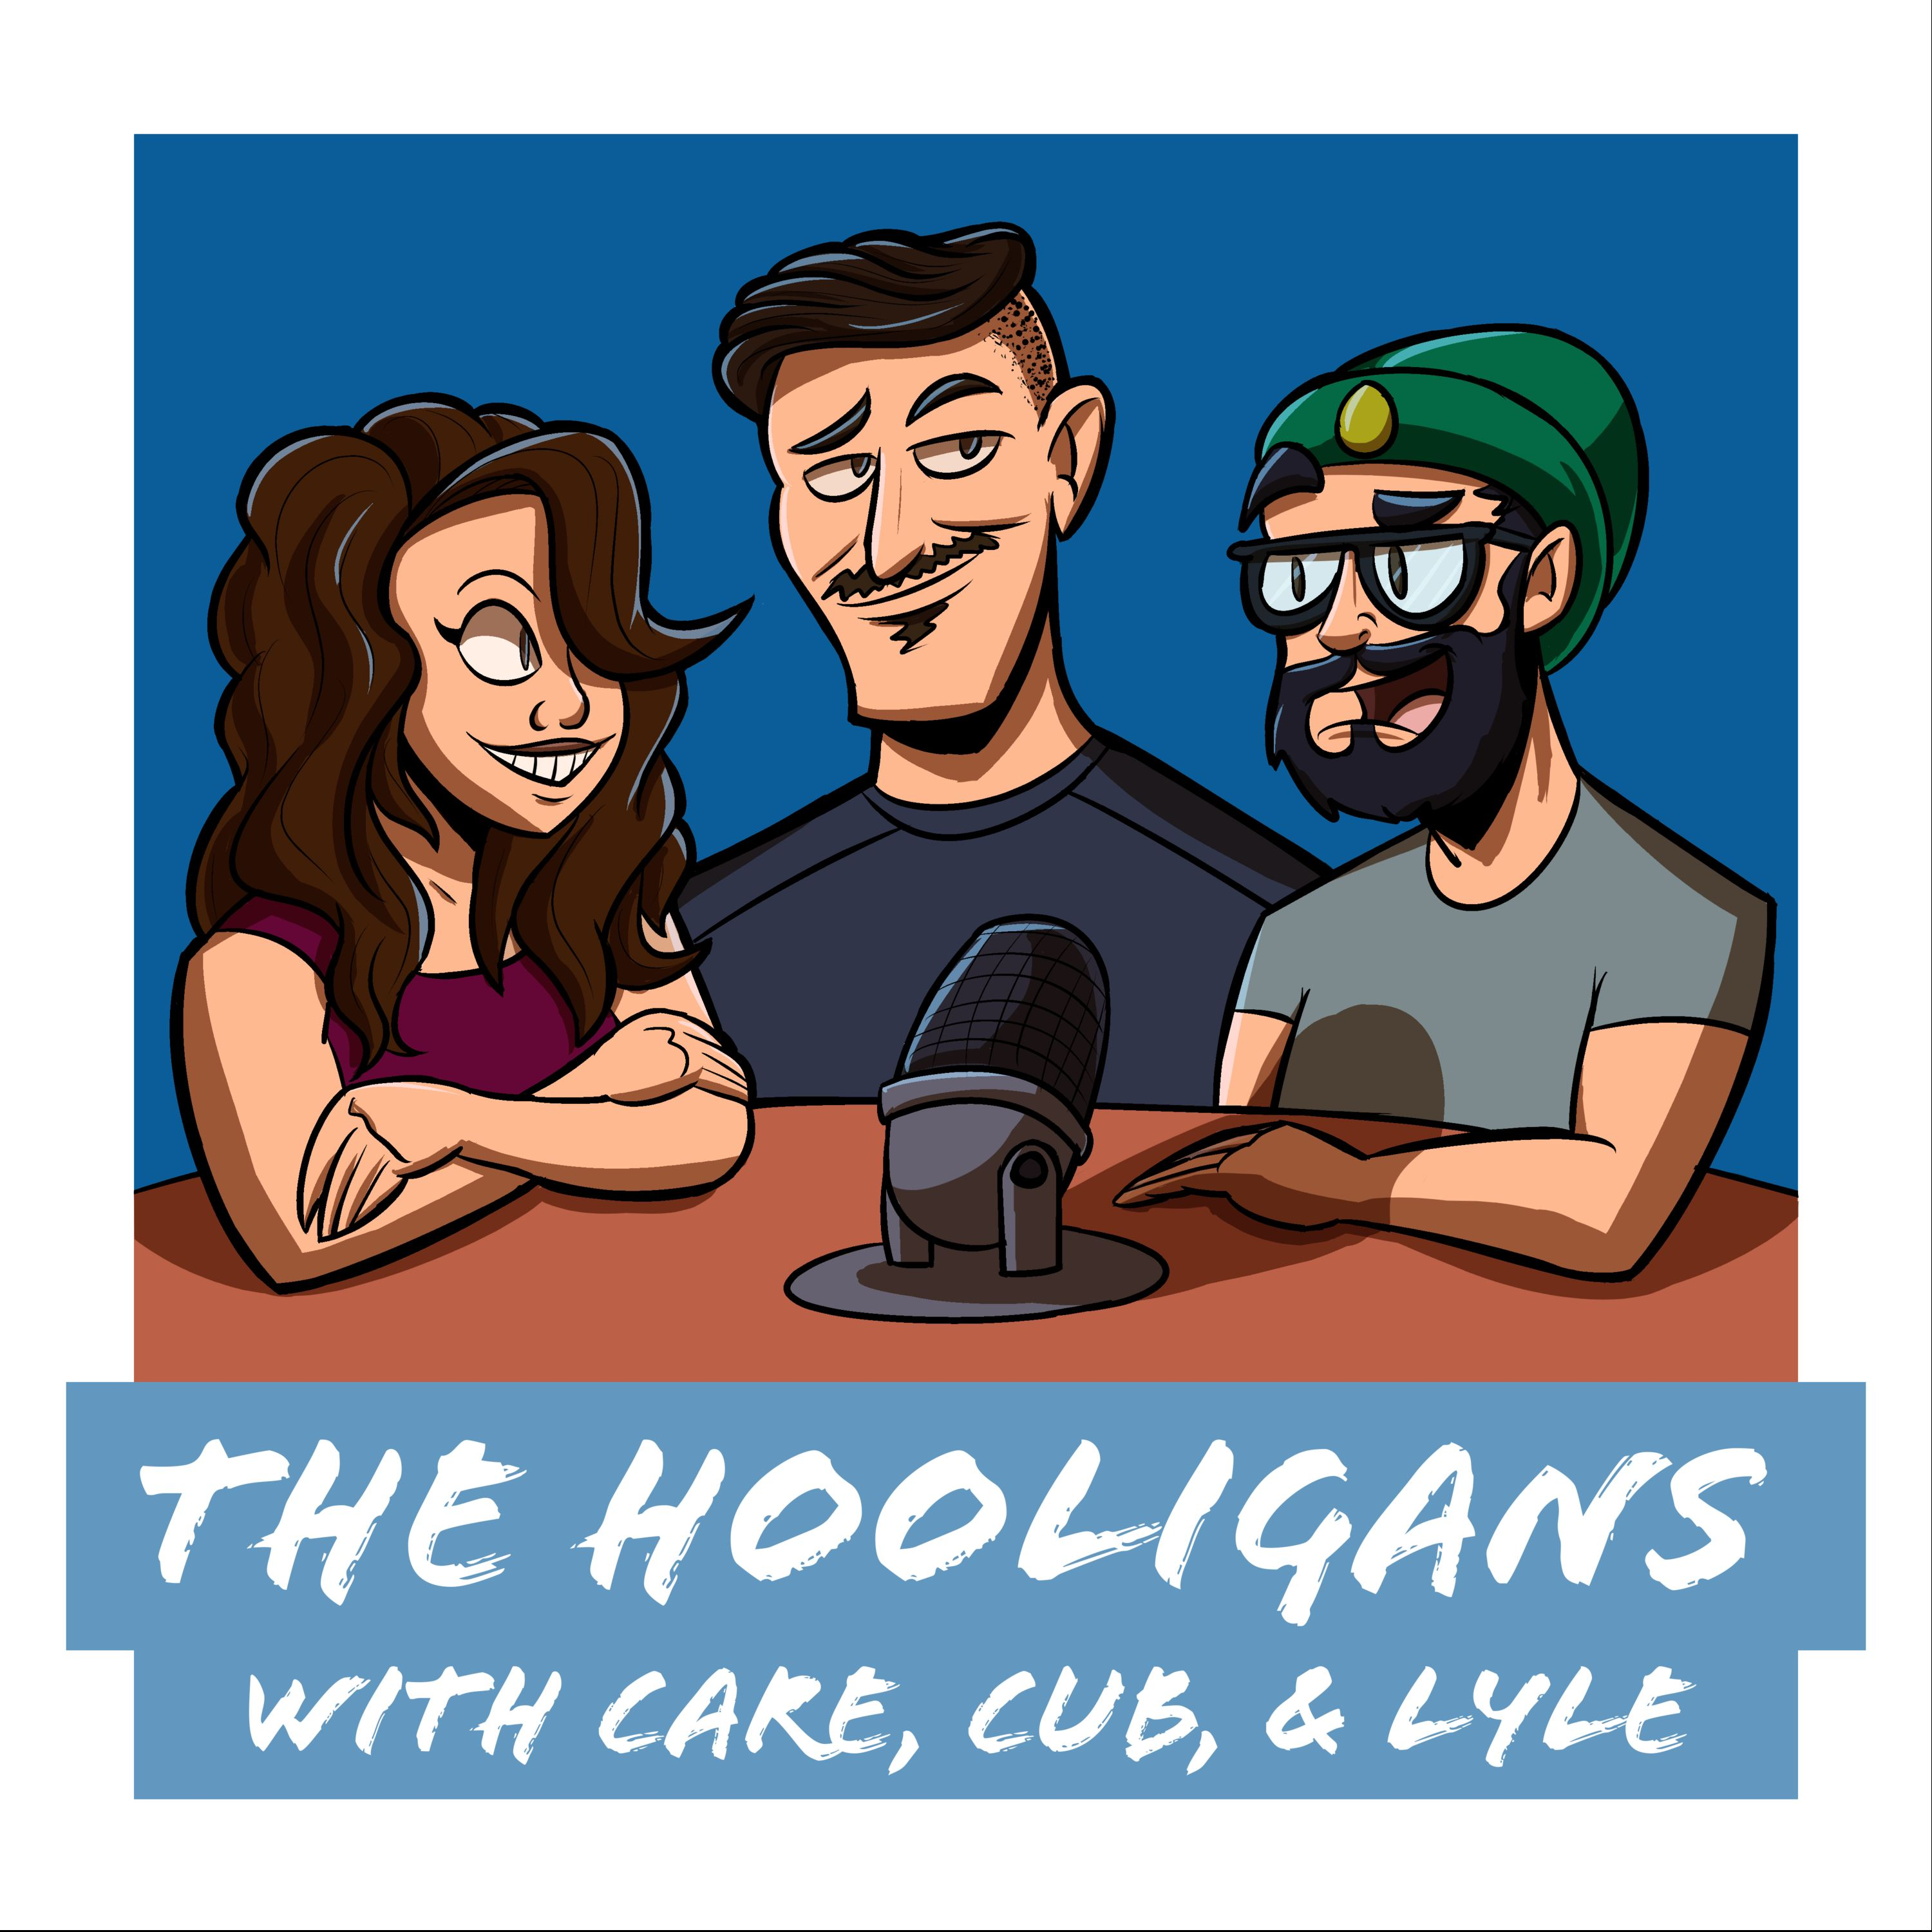 The Hooligans